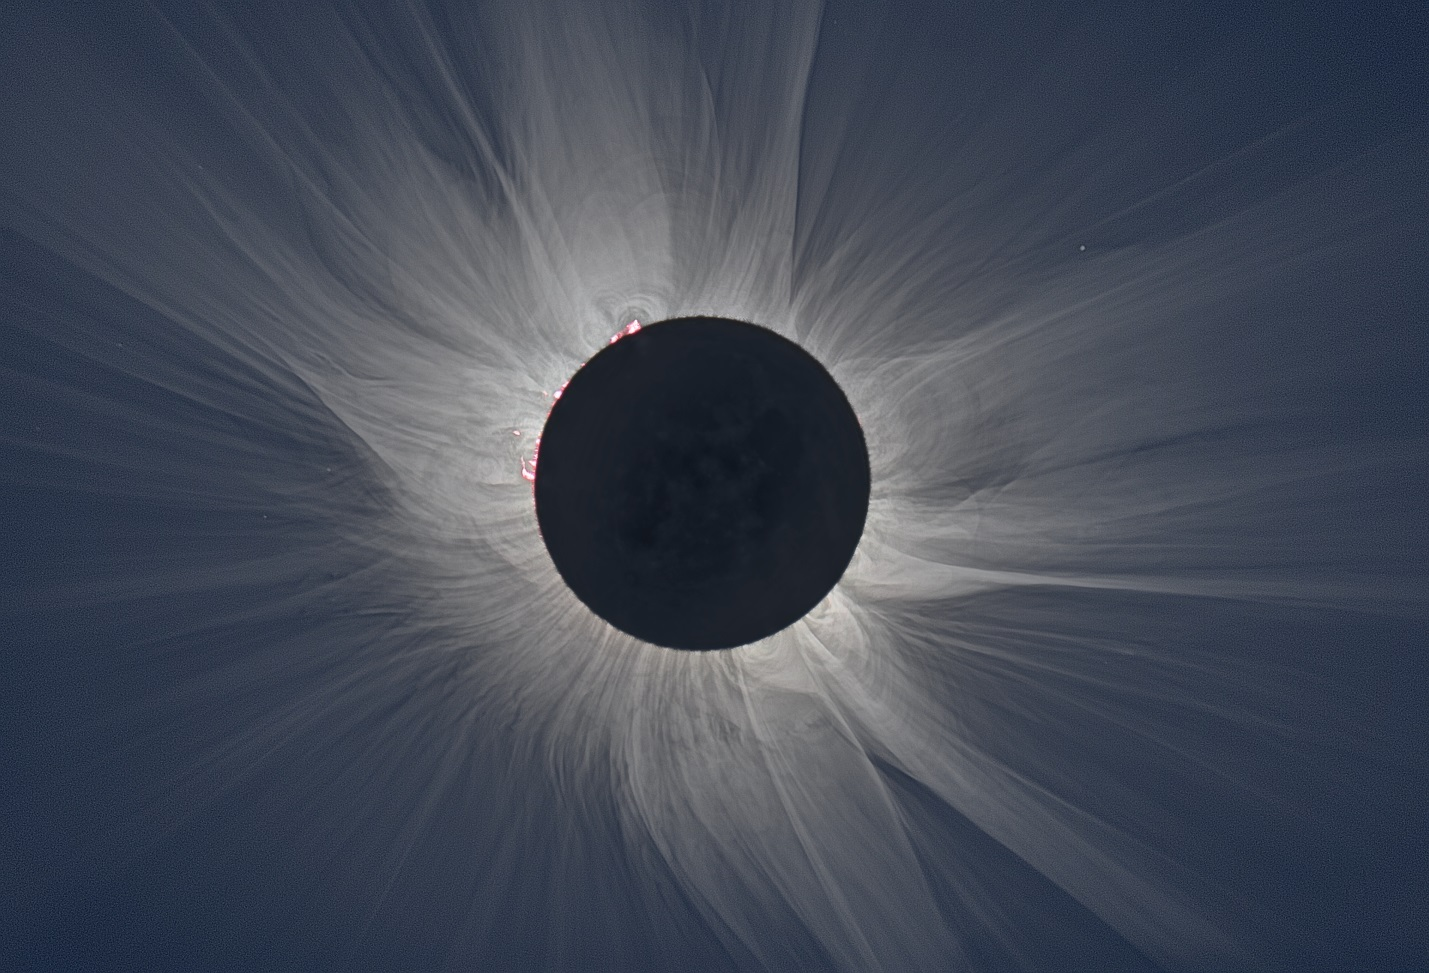 Total eclipse image taken March 20, 2015 in Svalbard, Norway. Credit: S. Habbal, M. Druckmüller and P. Aniol